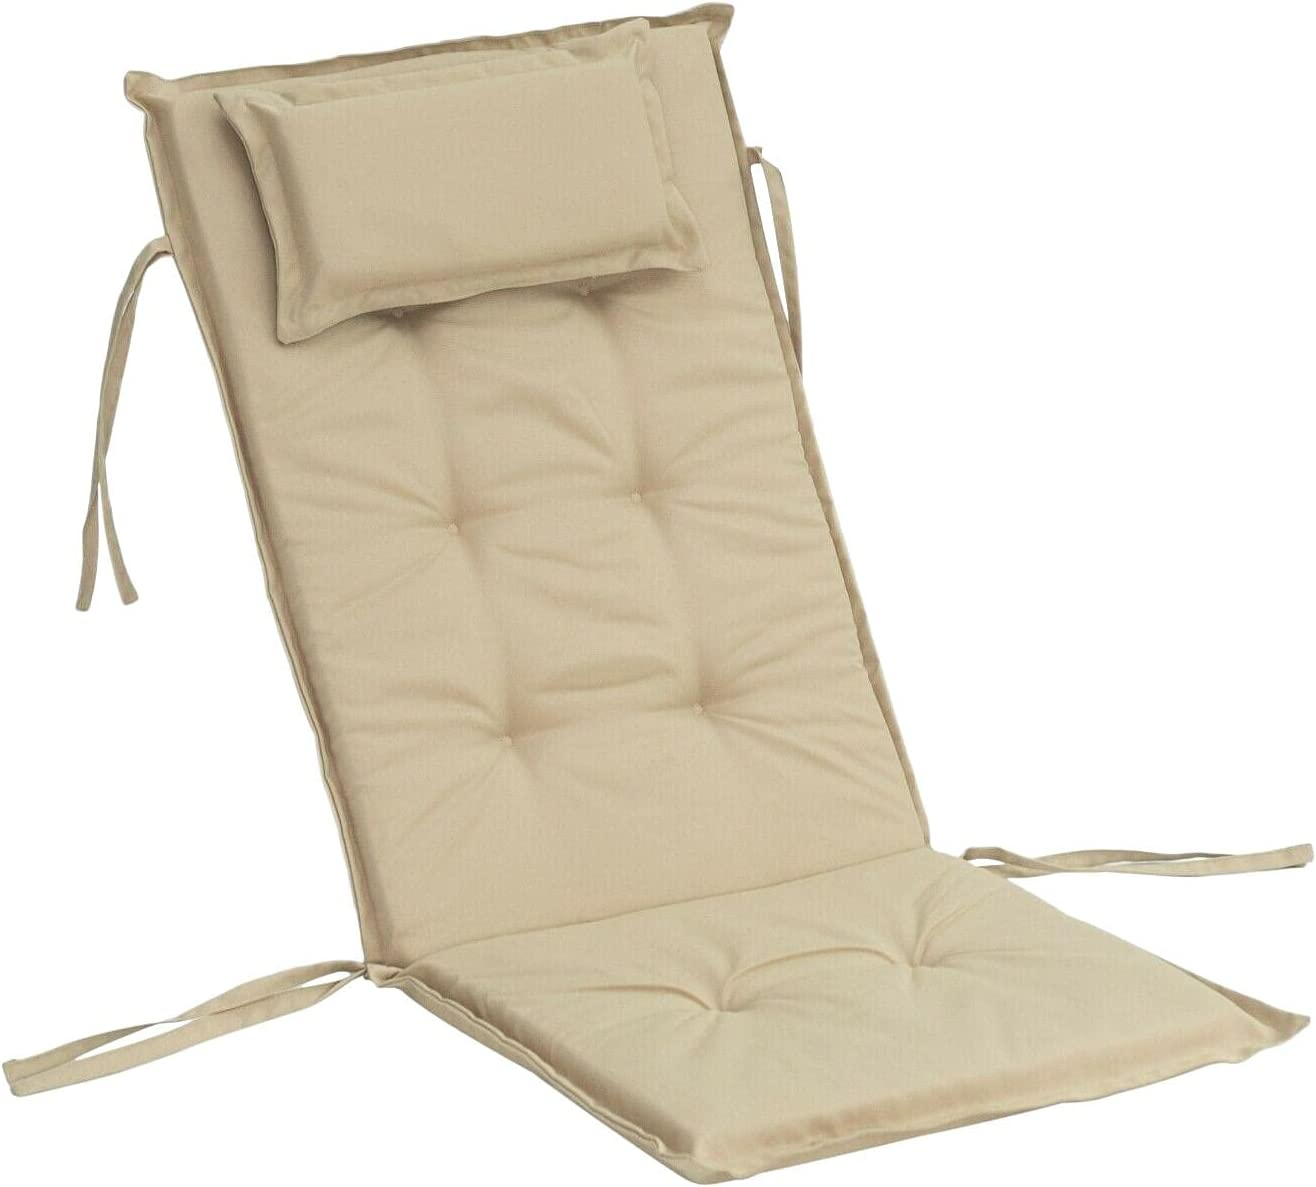 SAMBOR Purchase OutdoorIndoor Chaise Lounge Cushion inch Popular shop is the lowest price challenge 4724x1969x197 Fo